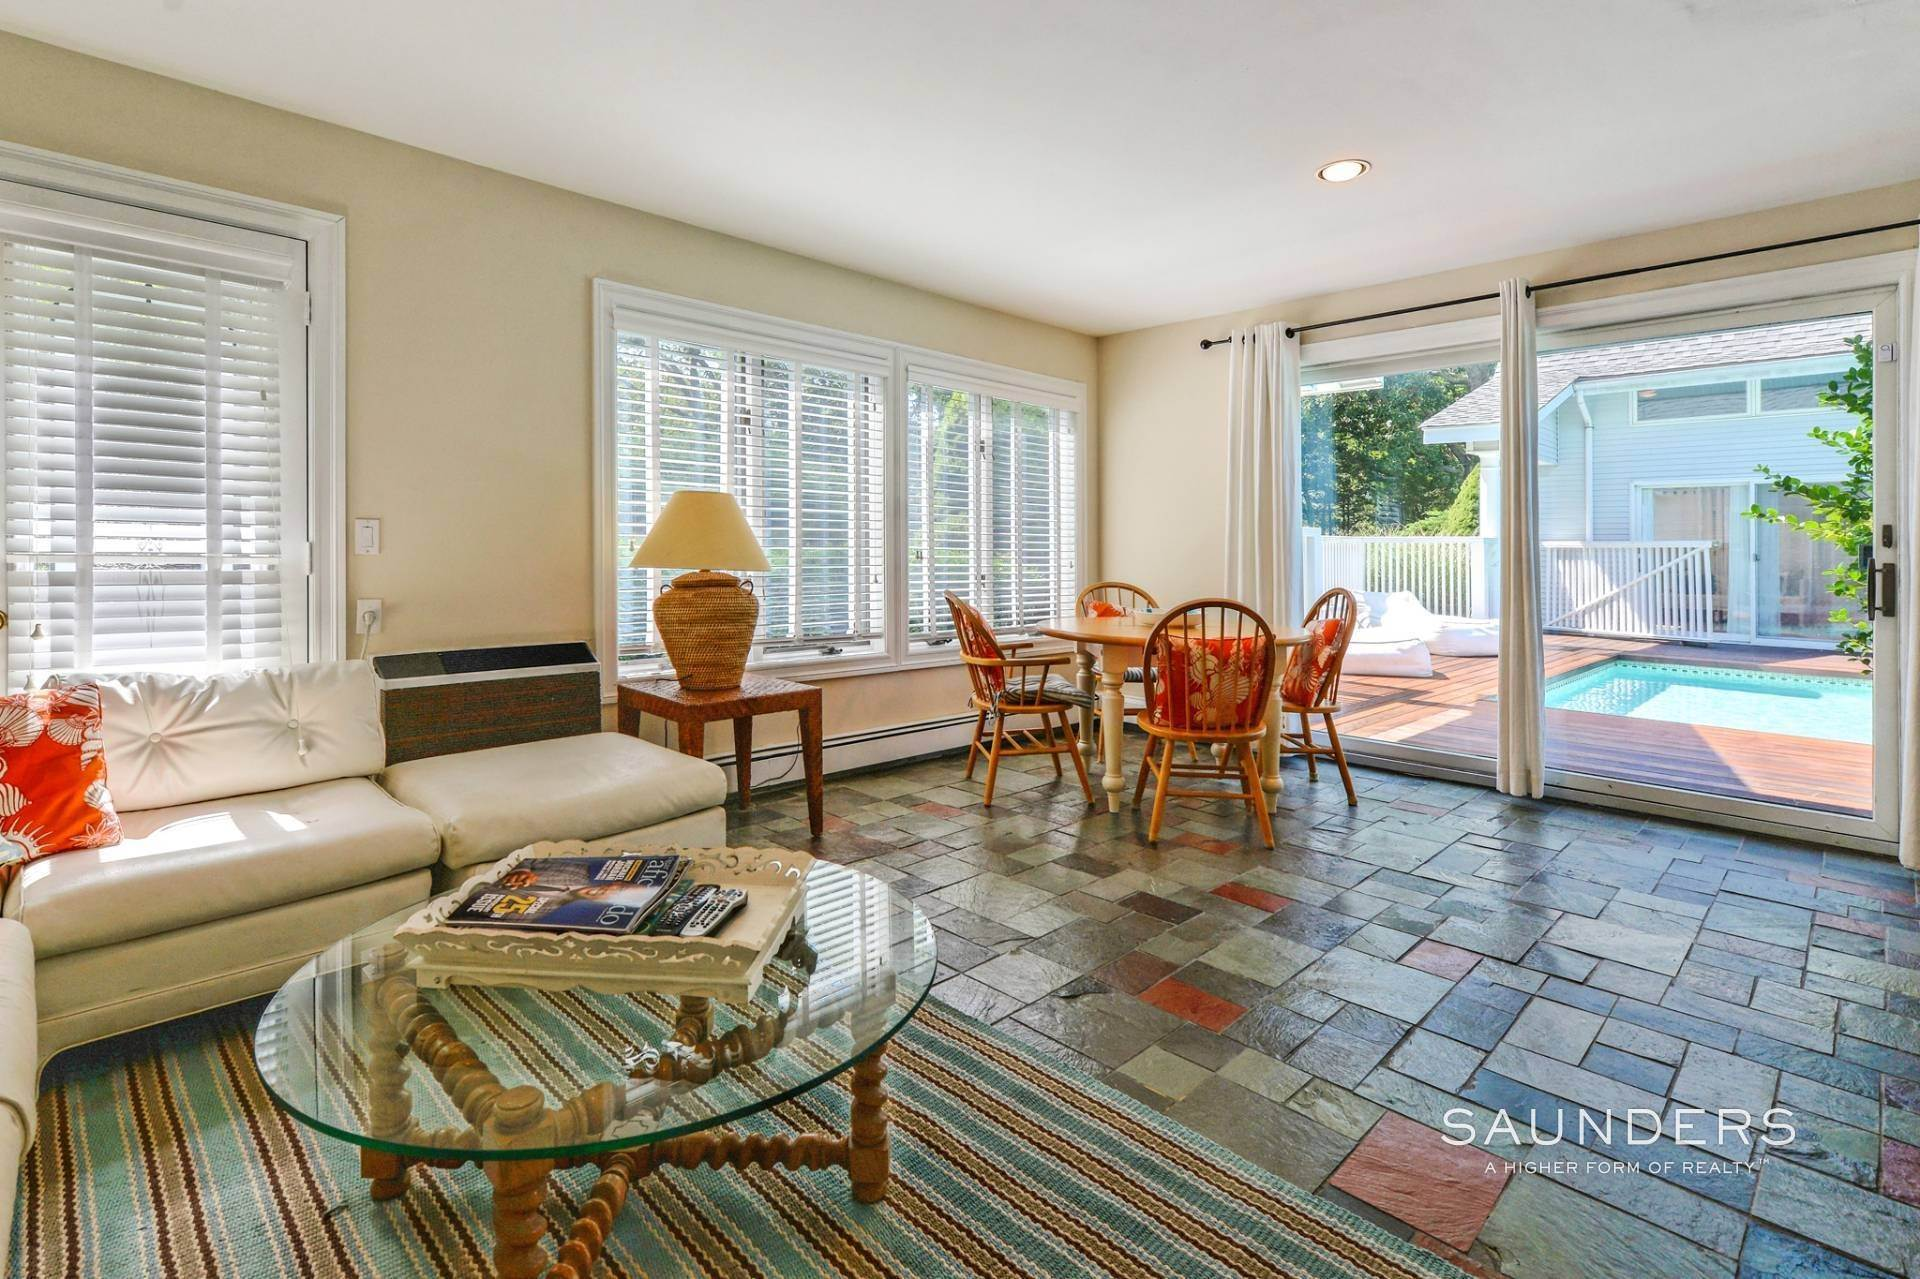 10. Single Family Homes for Sale at Estate Section Compound With Deep Water Dock, Sandy Beach, Pool 58 Westmoreland Drive, Shelter Island Heights, Shelter Island, NY 11964